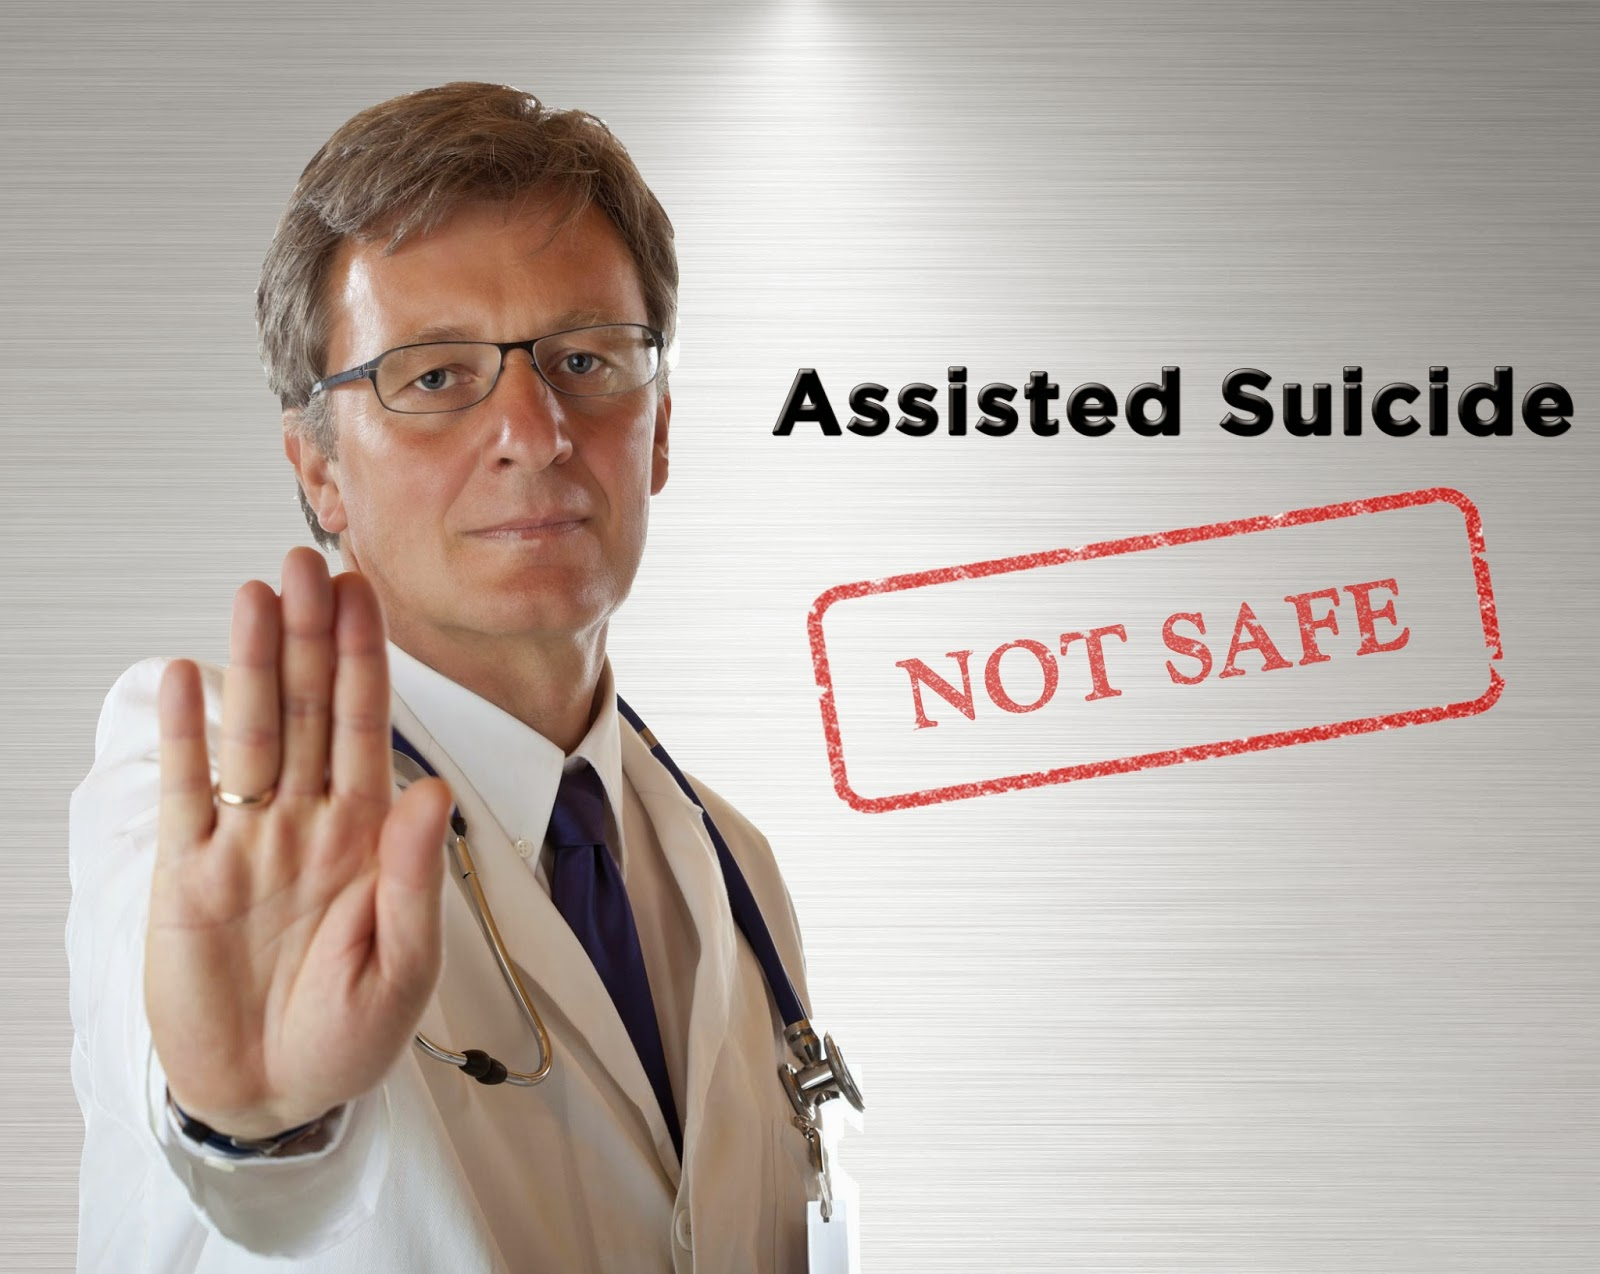 Assisted Suicide is not safe